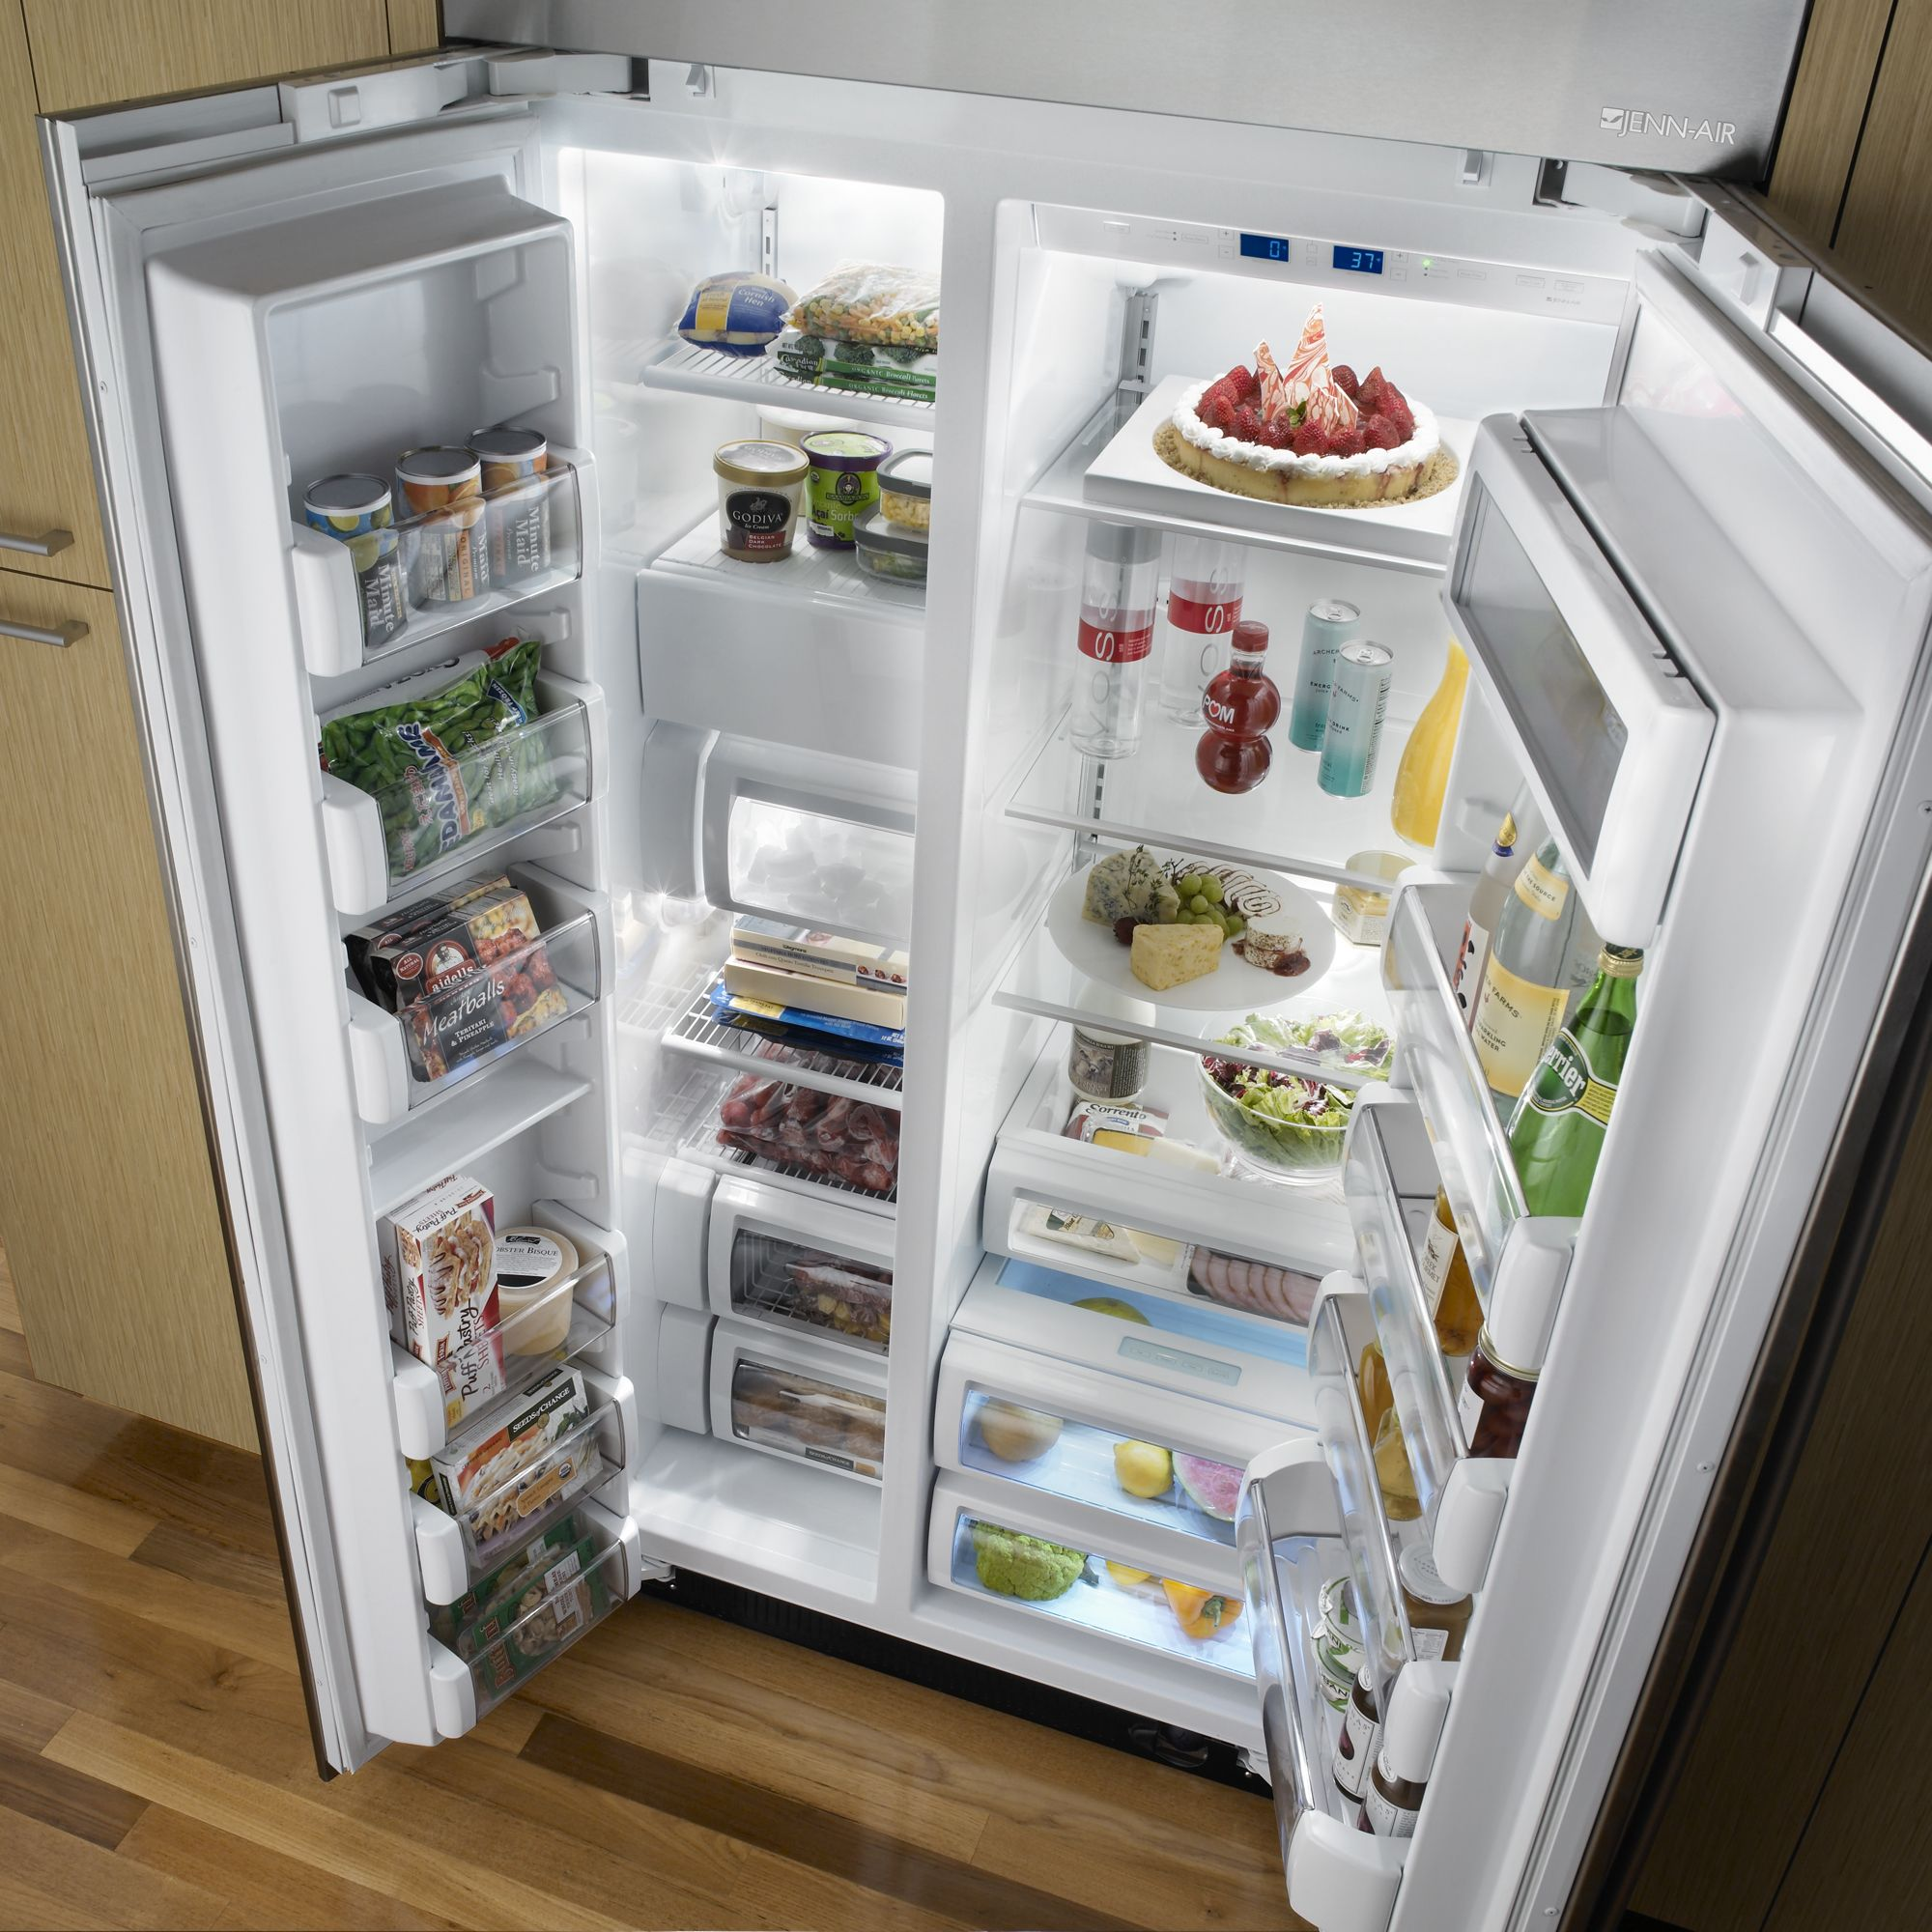 Jenn-Air 24.6 cu. ft. Fully Integrated Built-In Side-By-Side Refrigerator